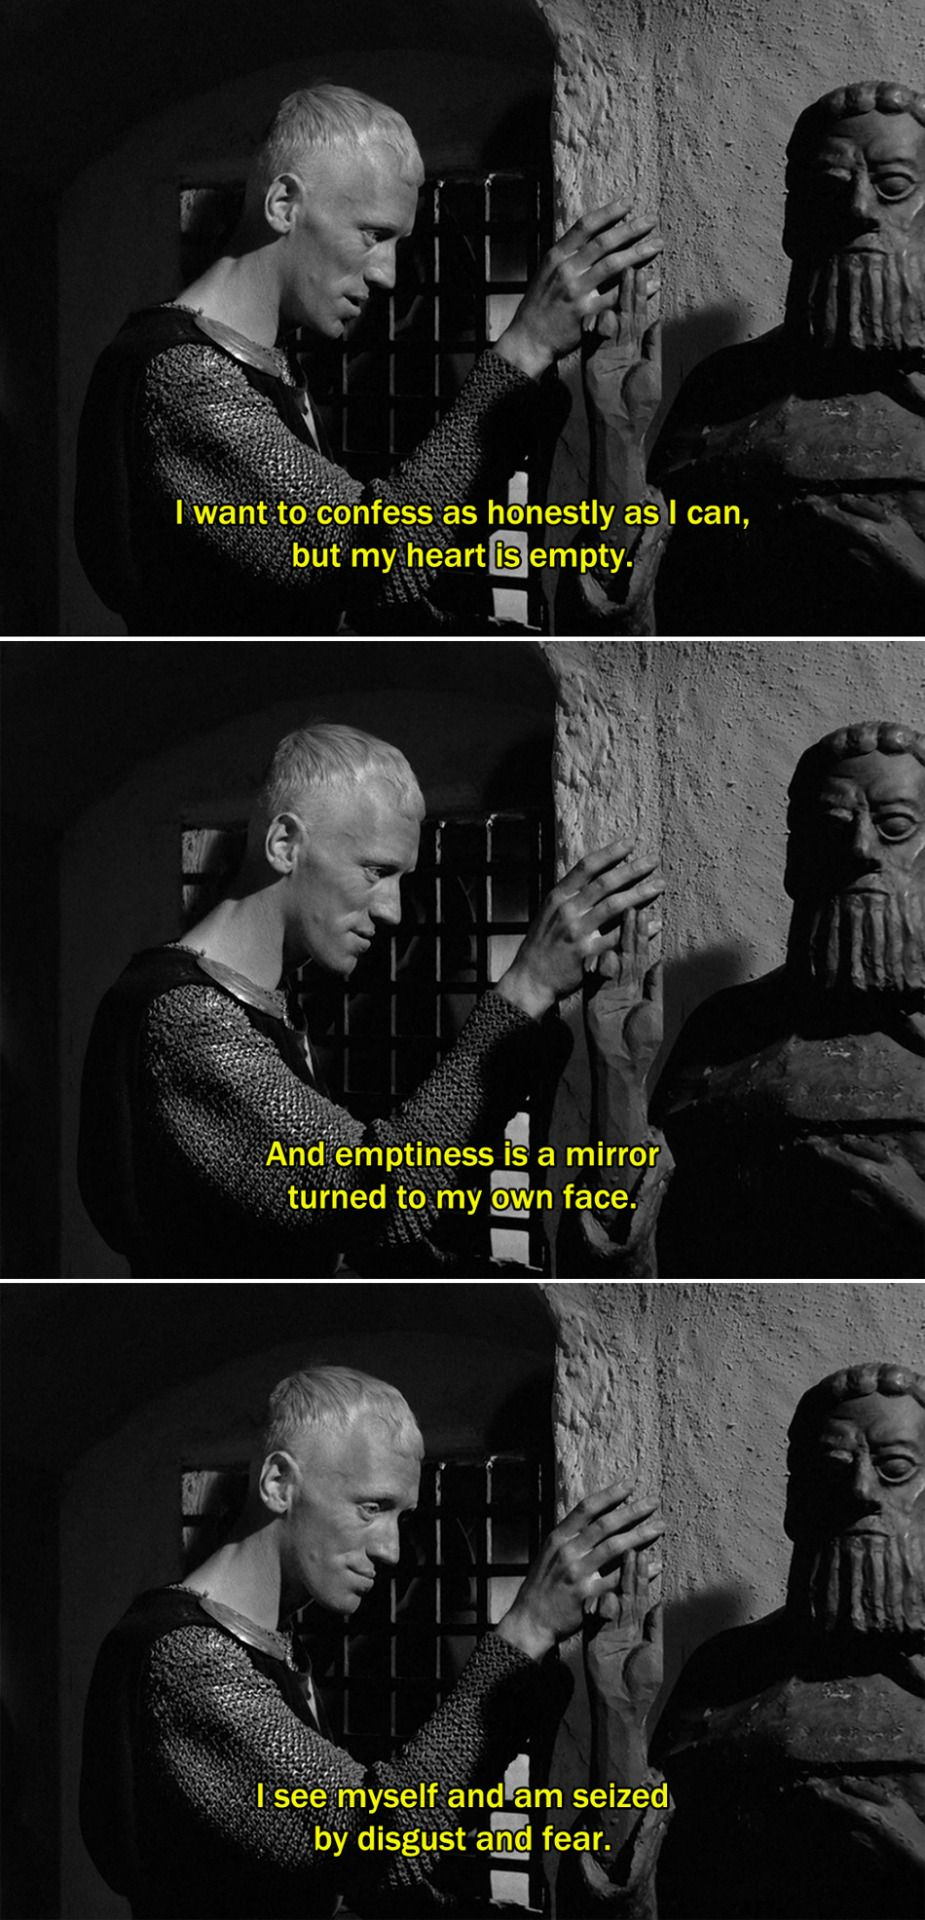 The Seventh Seal (1957) Block I want to confess as